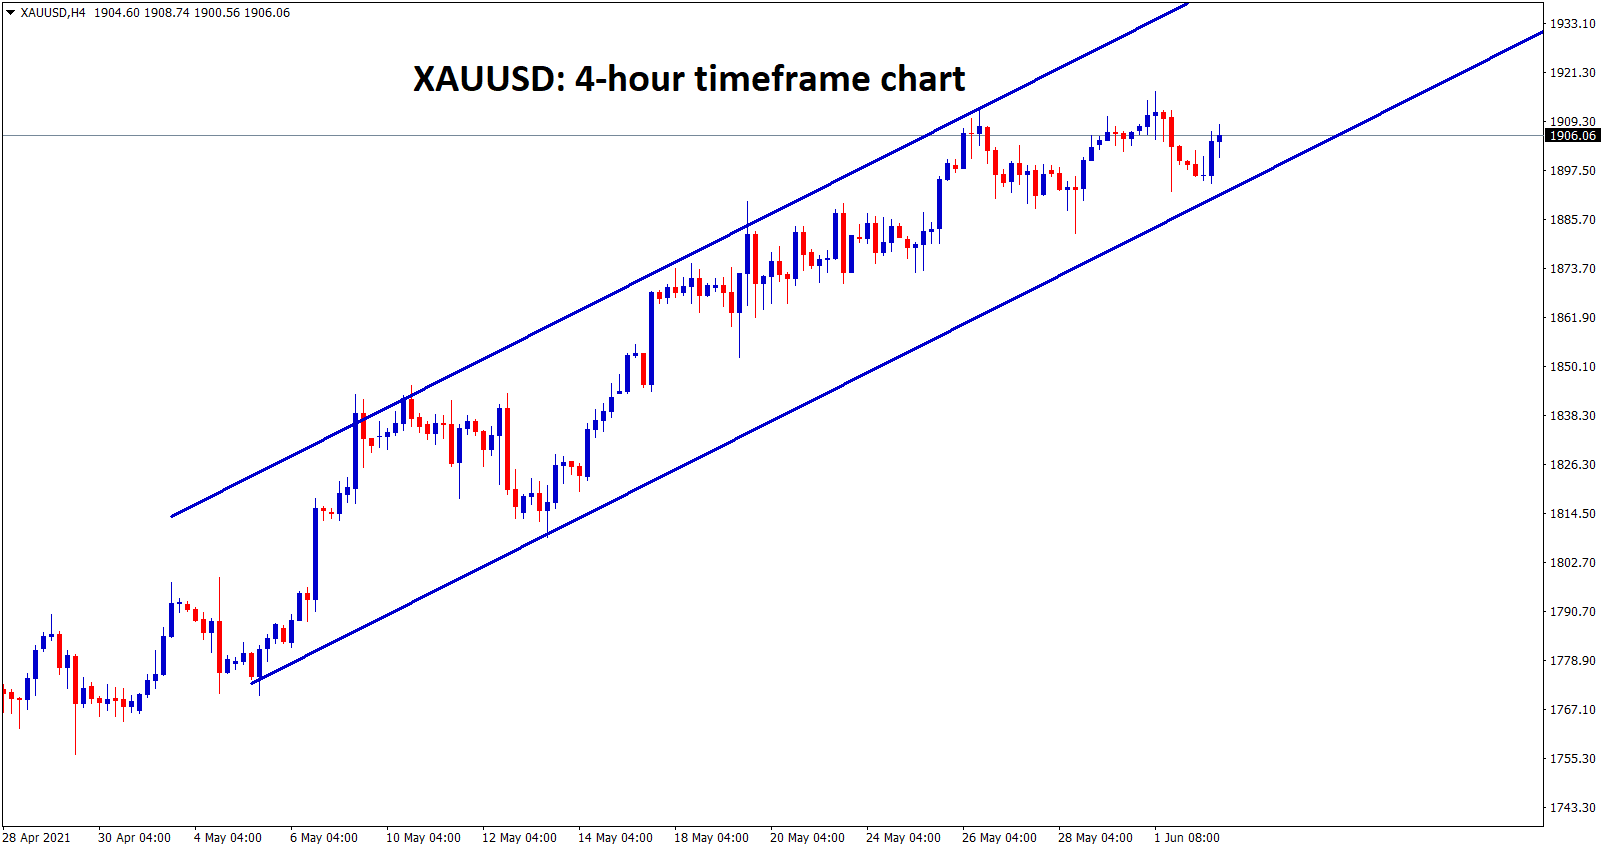 Gold is still moving in an uptrend range channel wait for breakout from this channel